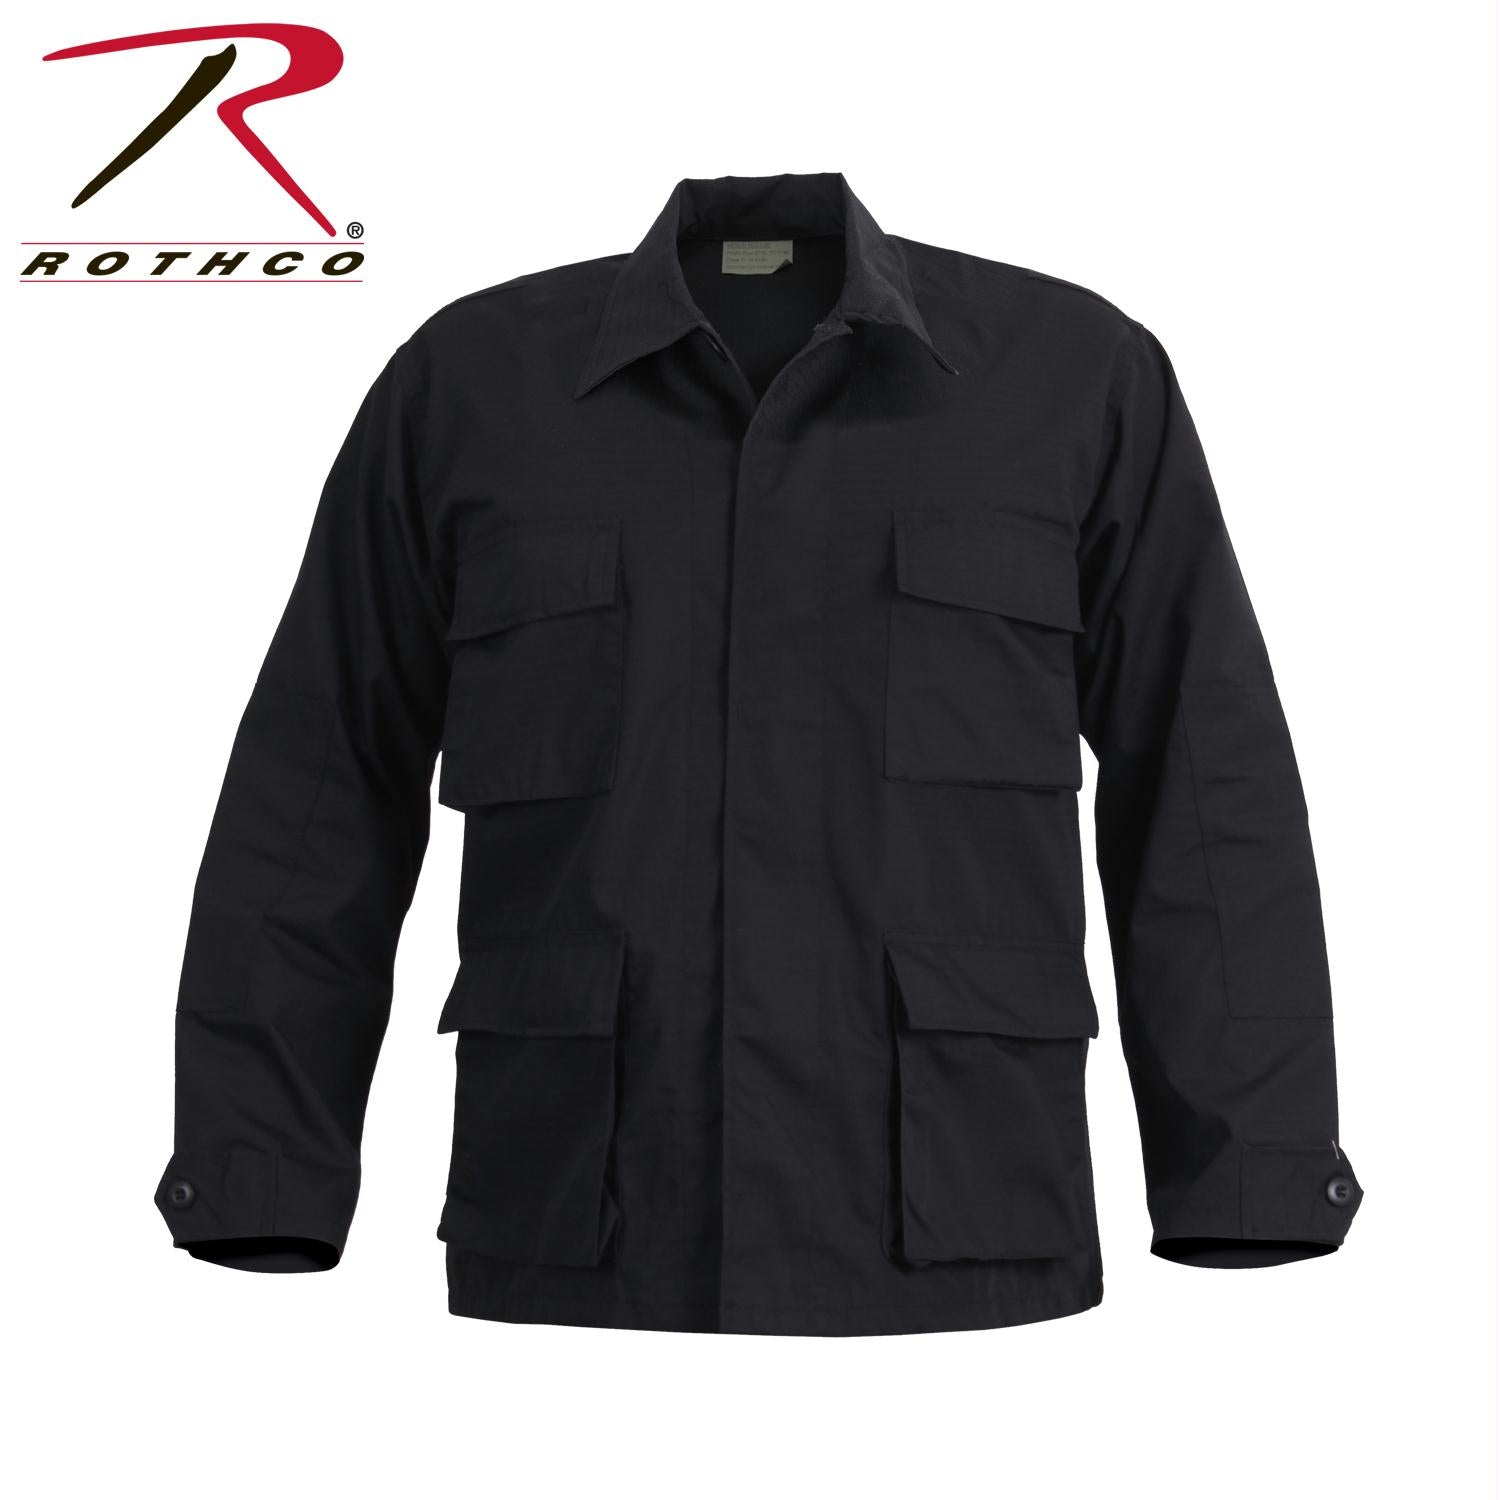 Rothco SWAT Cloth BDU Shirt - Black / S